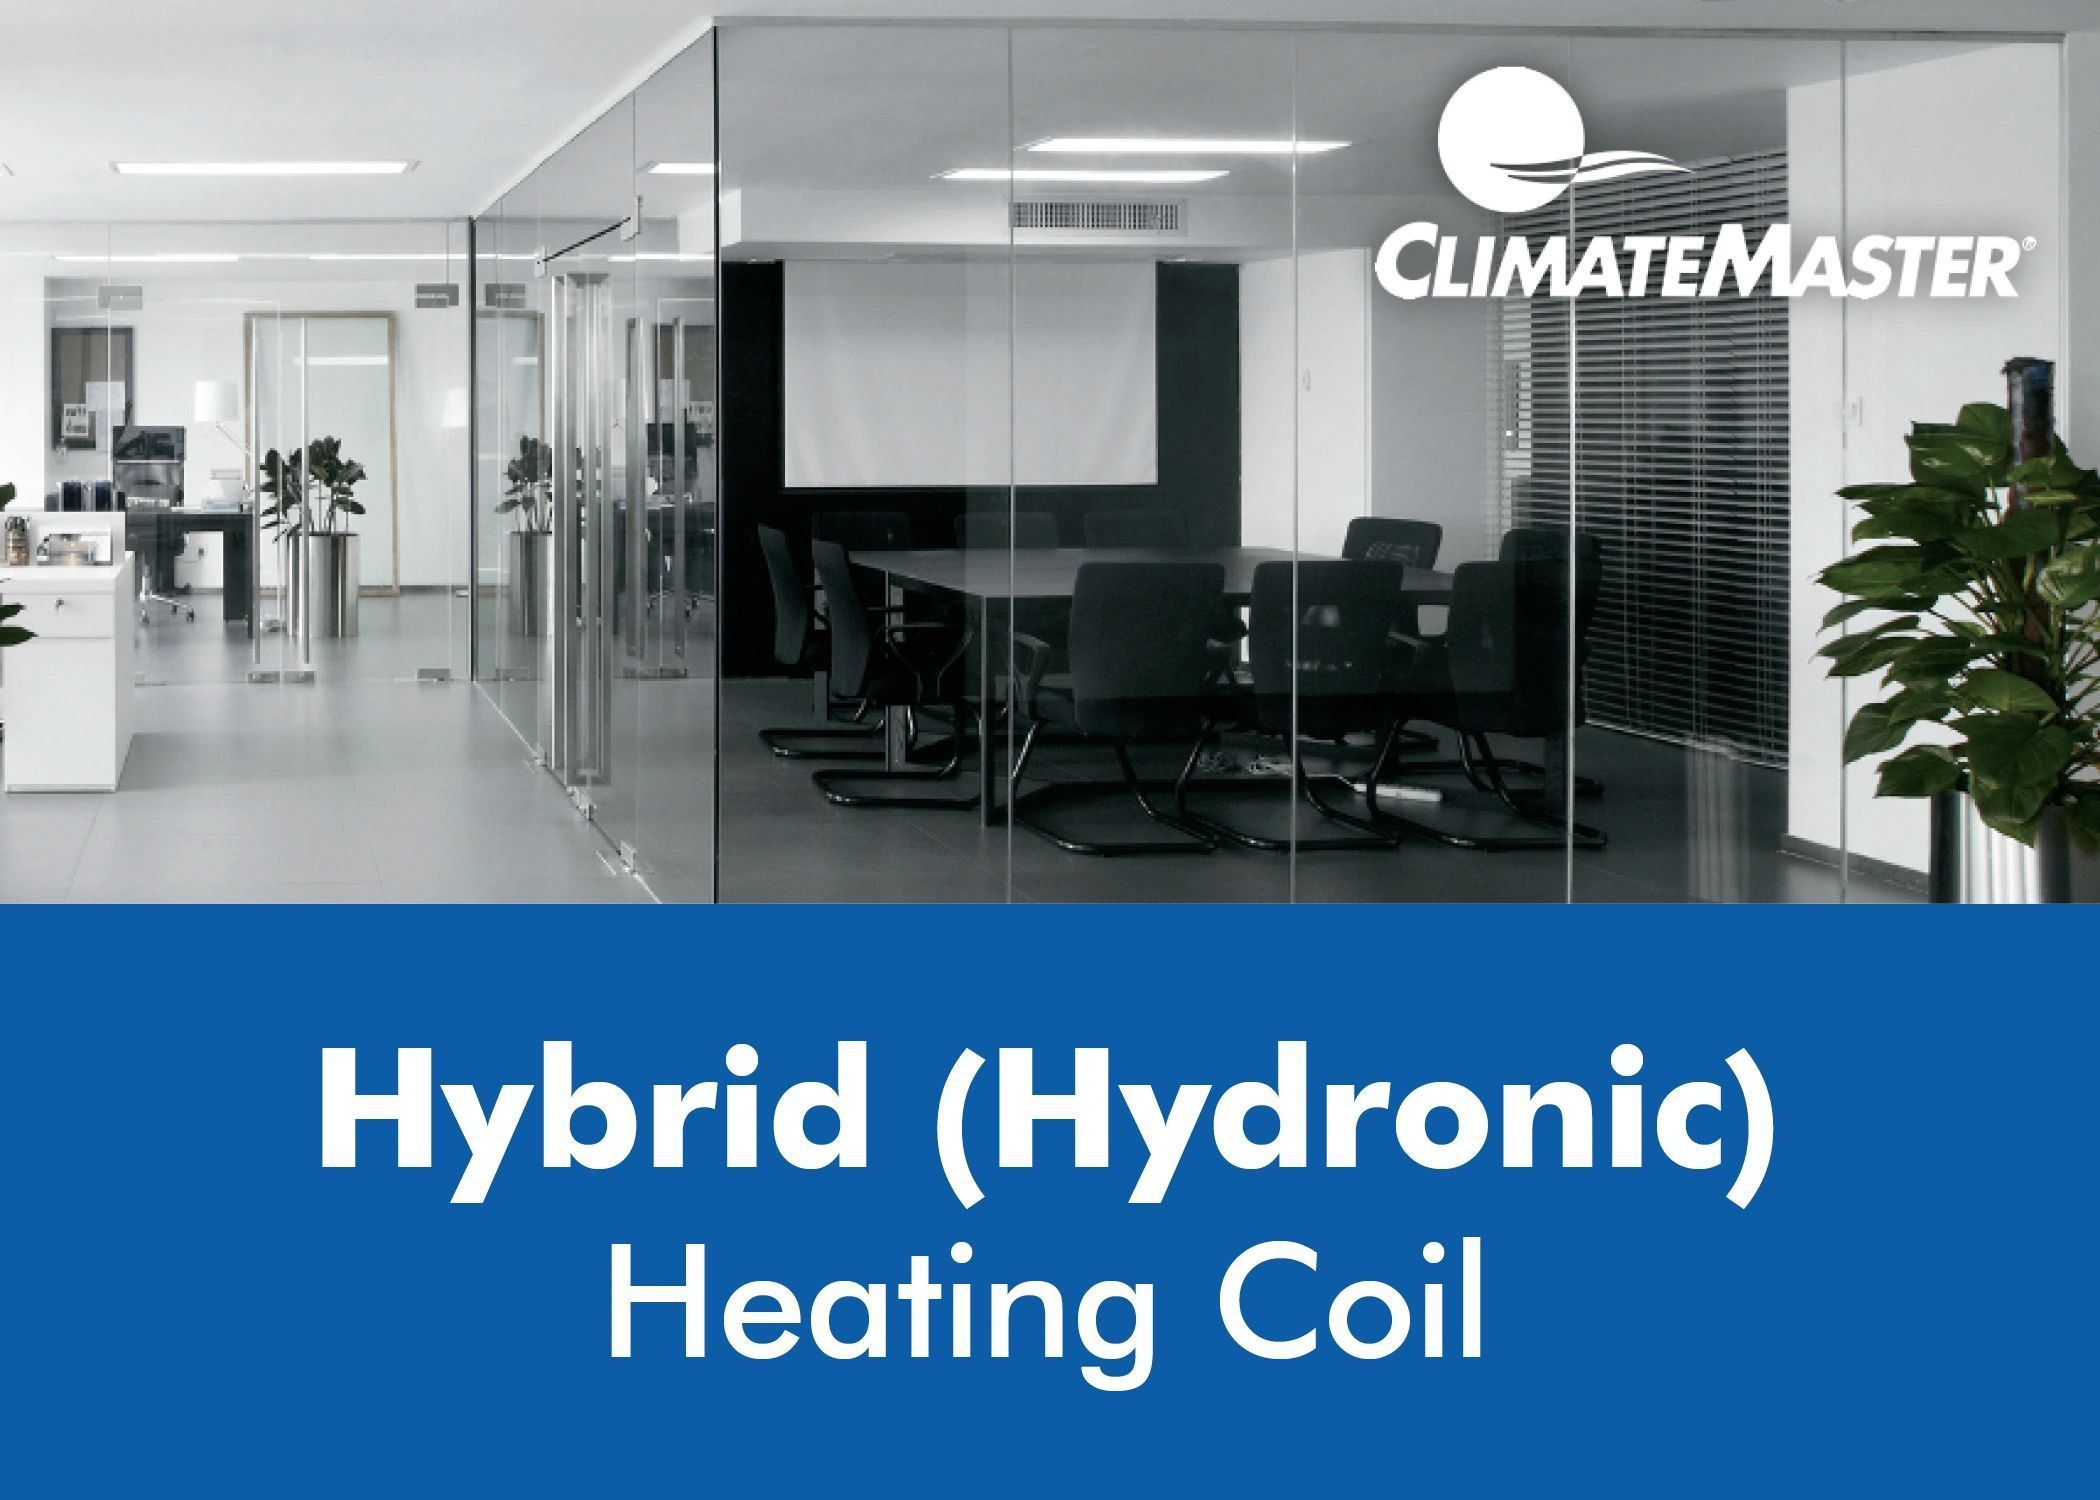 Hybrid (Hydronic) Heating Coil The Hybrid system combines